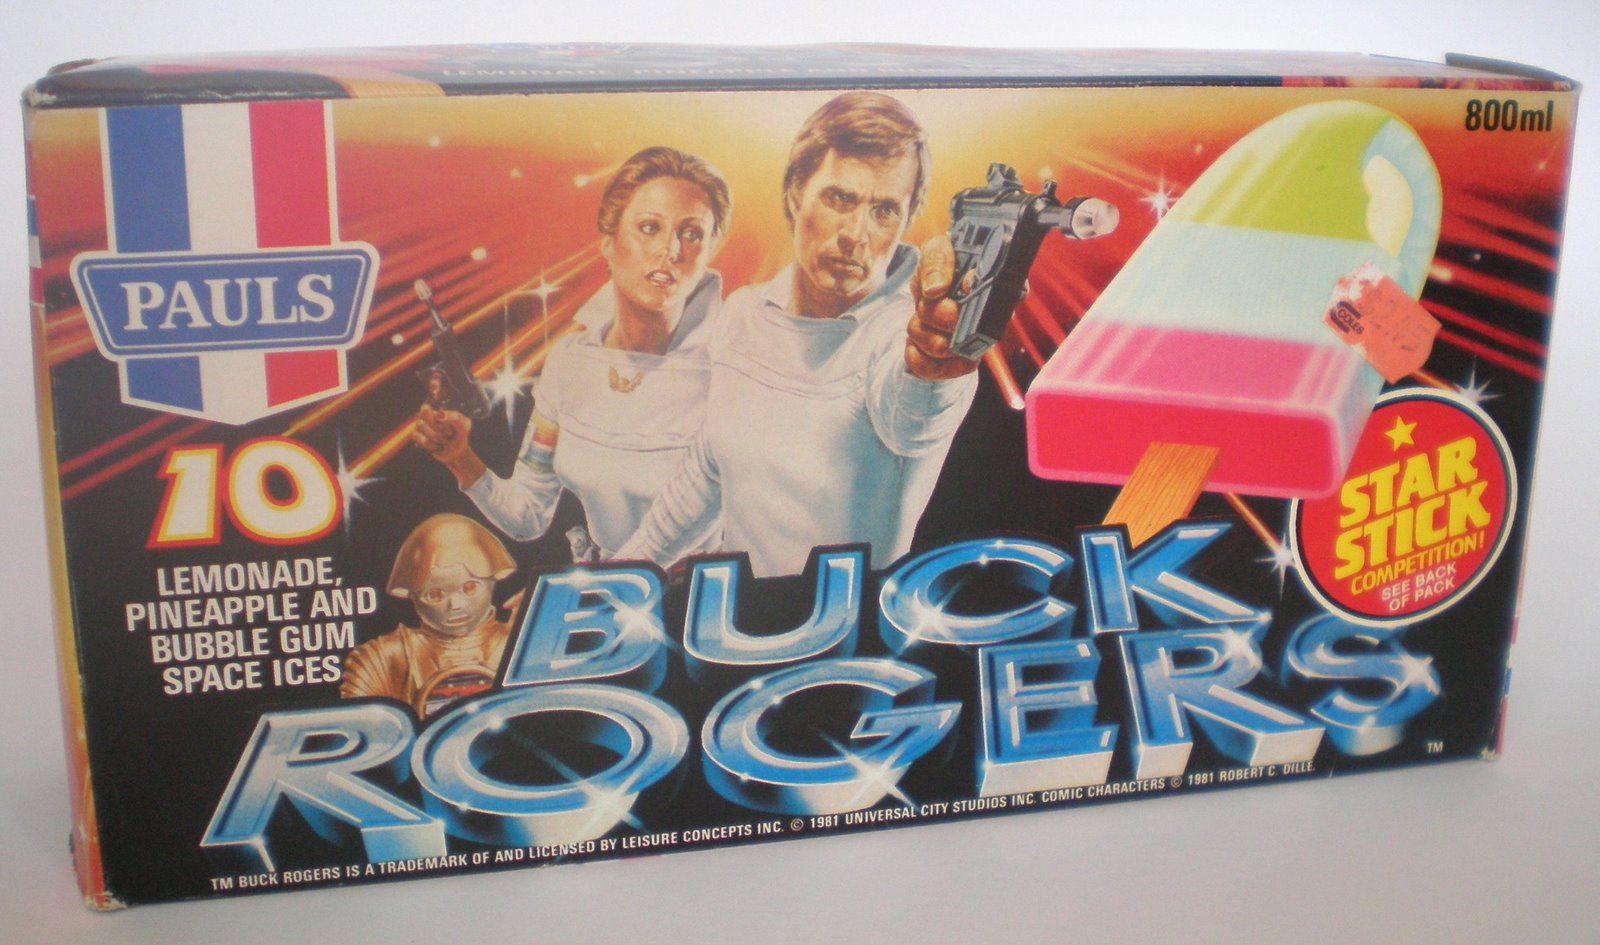 030507 022 728702 Vintage Buck Rogers Australian Ice Creams 